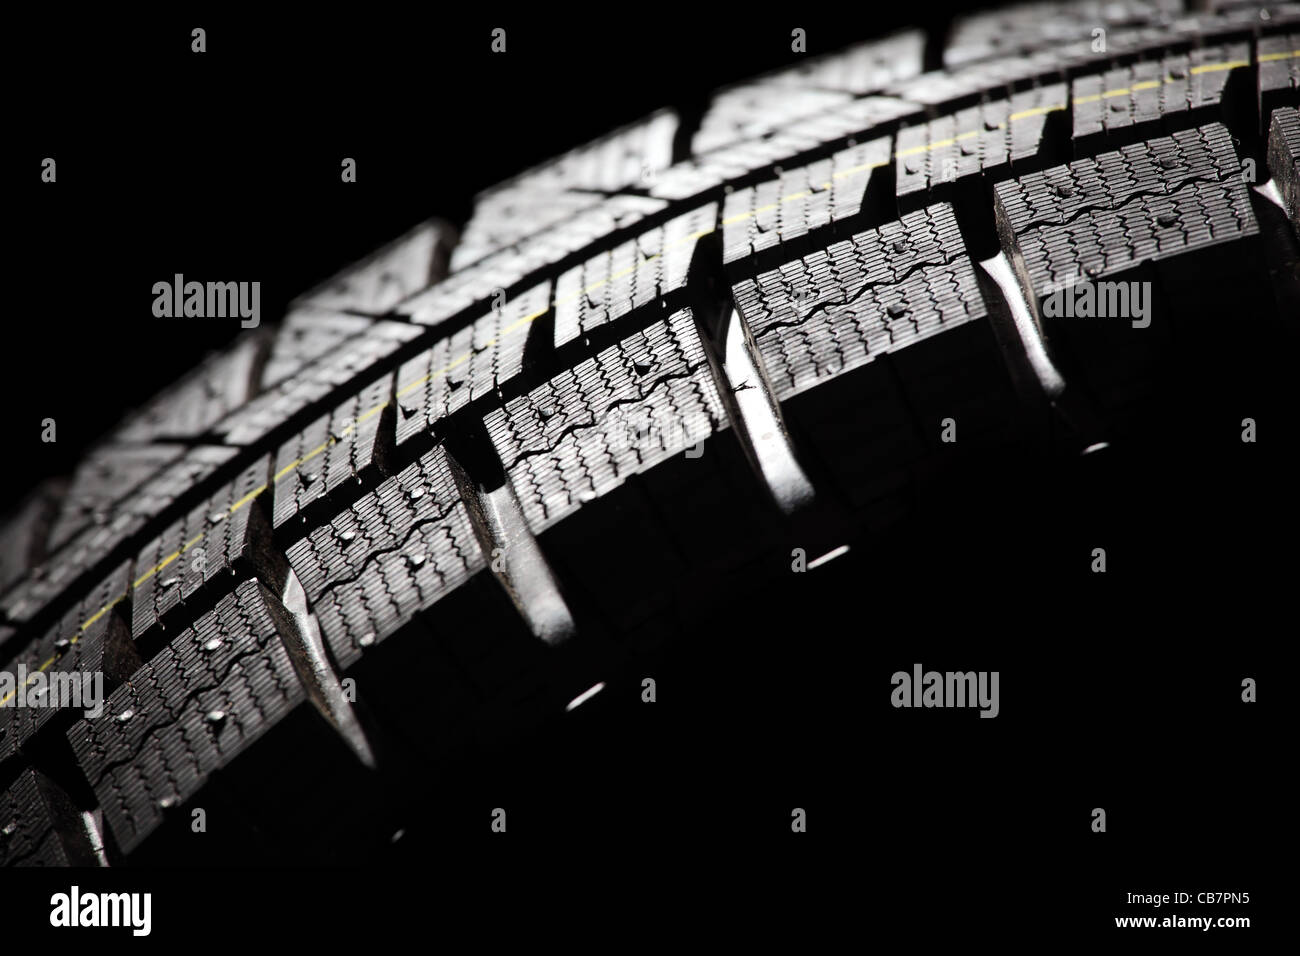 Part of brand new car tyre close-up. Horizontal composition. Stock Photo